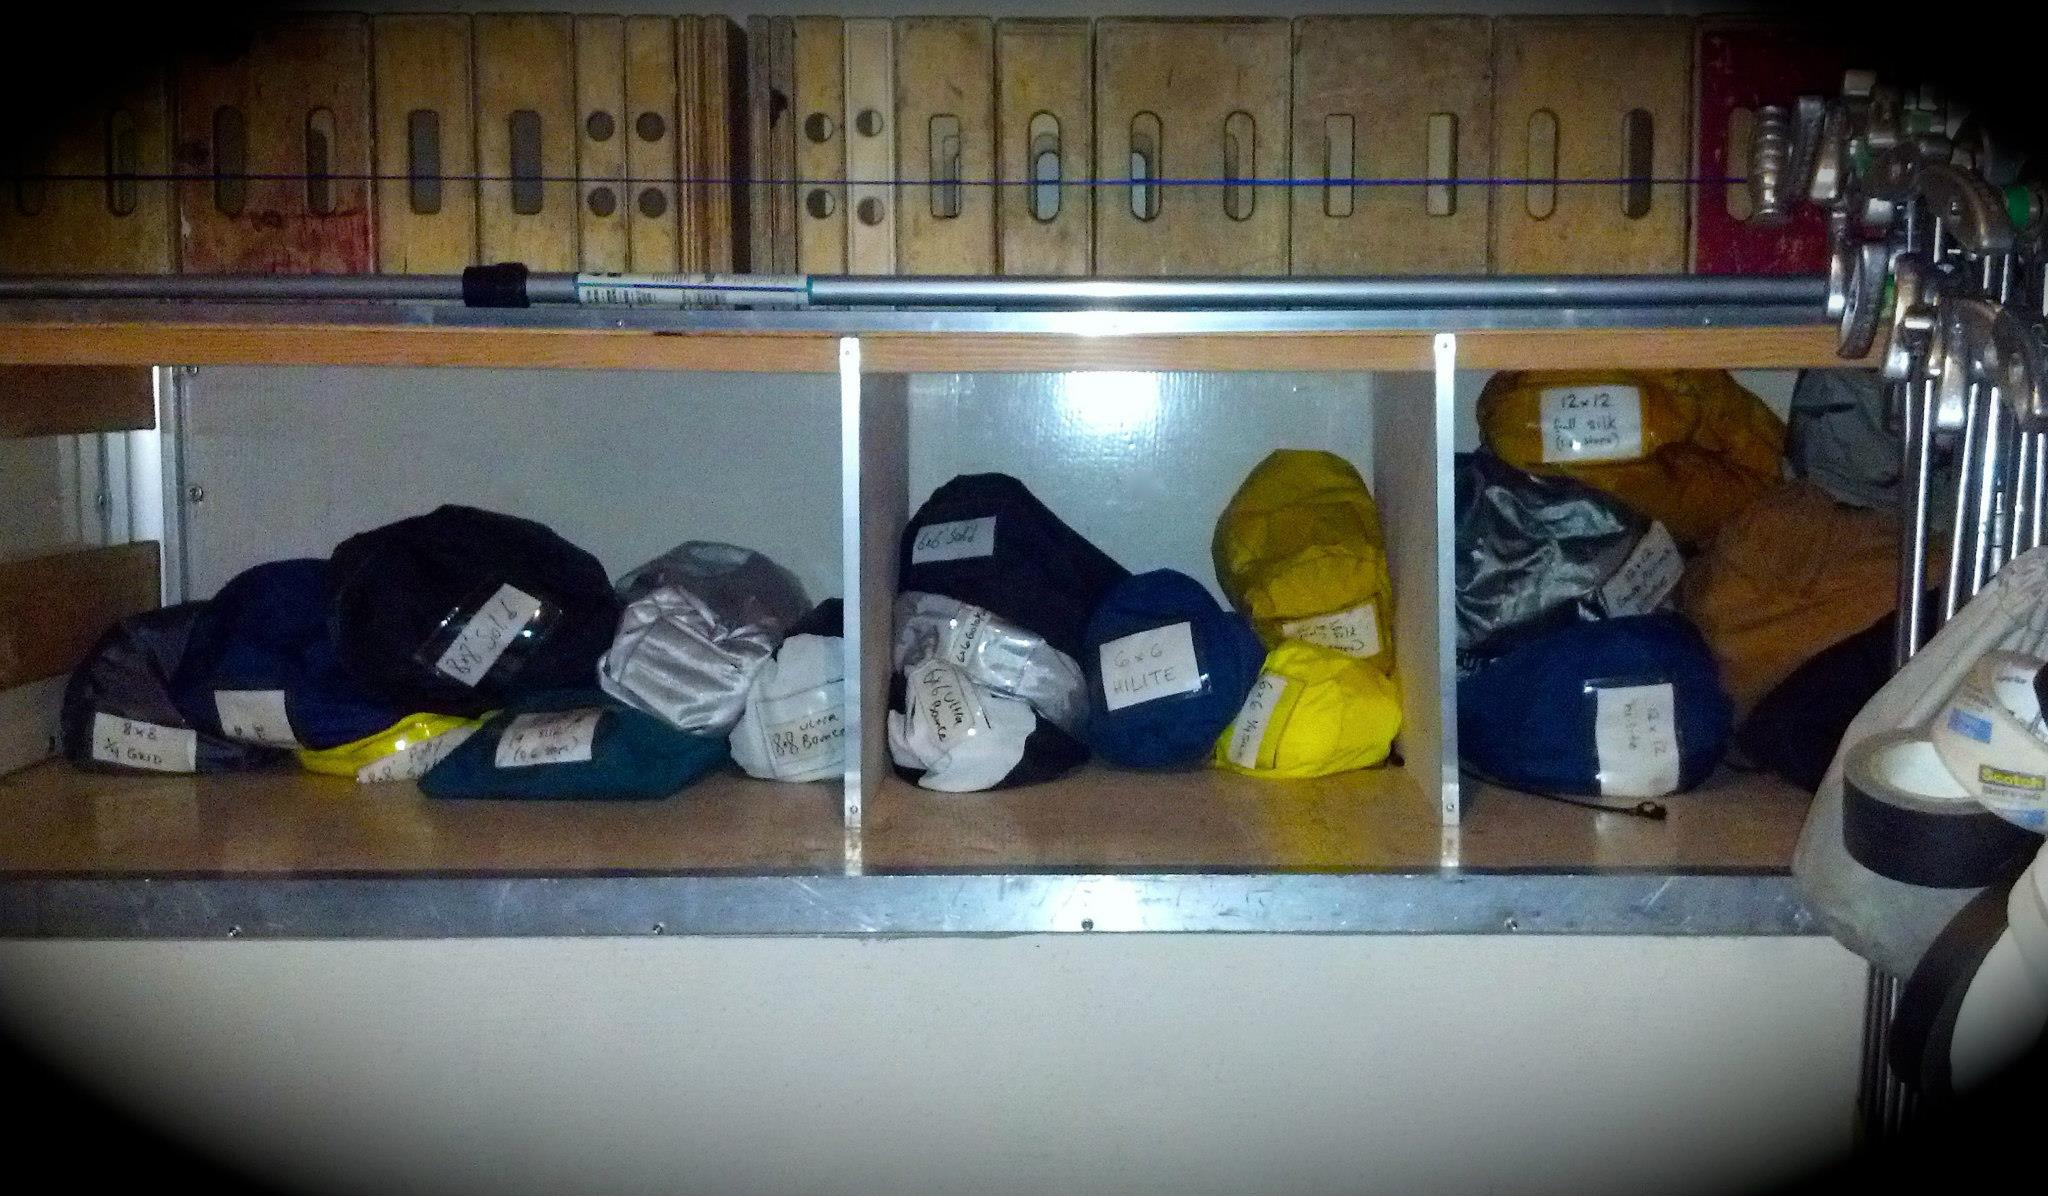 Overheads are organized by color -- black for solids, yellows for silks, blues for vinyls, grays for grids clothes.